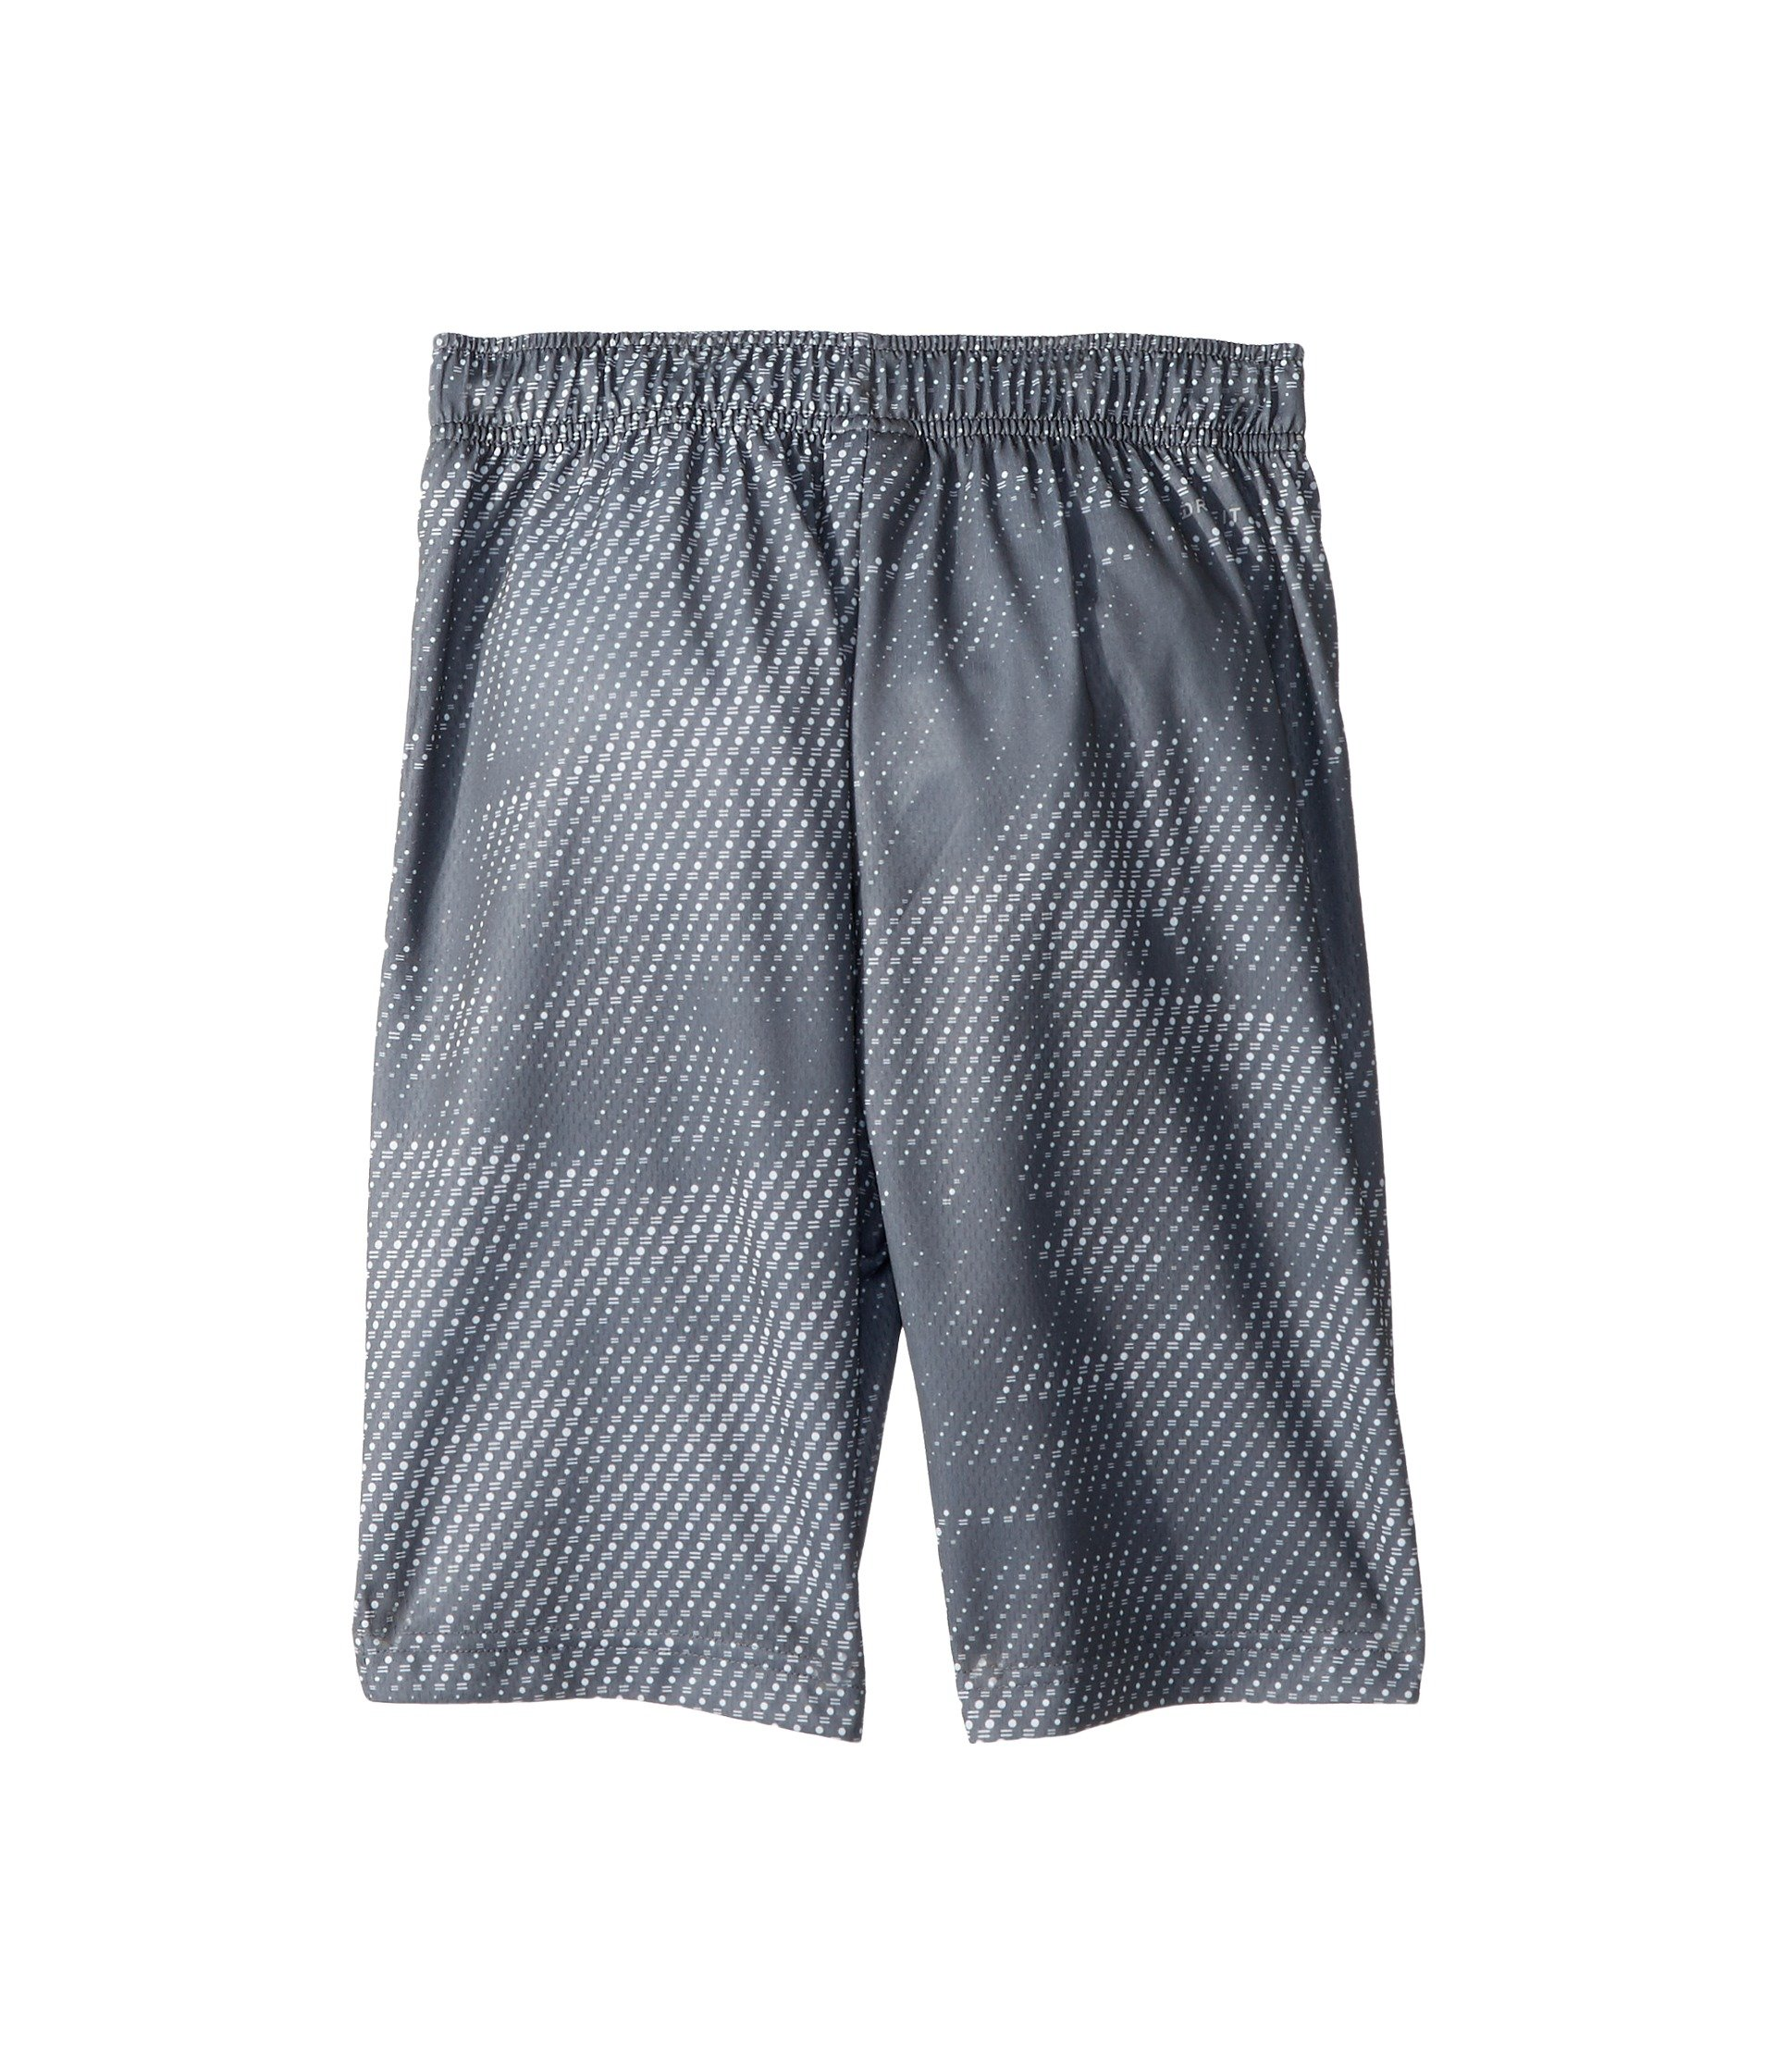 Nike Boy's Athletic Dry Printed Fly Comfortable Elastic Training Shorts with Pockets (Cool Grey/X-Small) by Nike (Image #3)